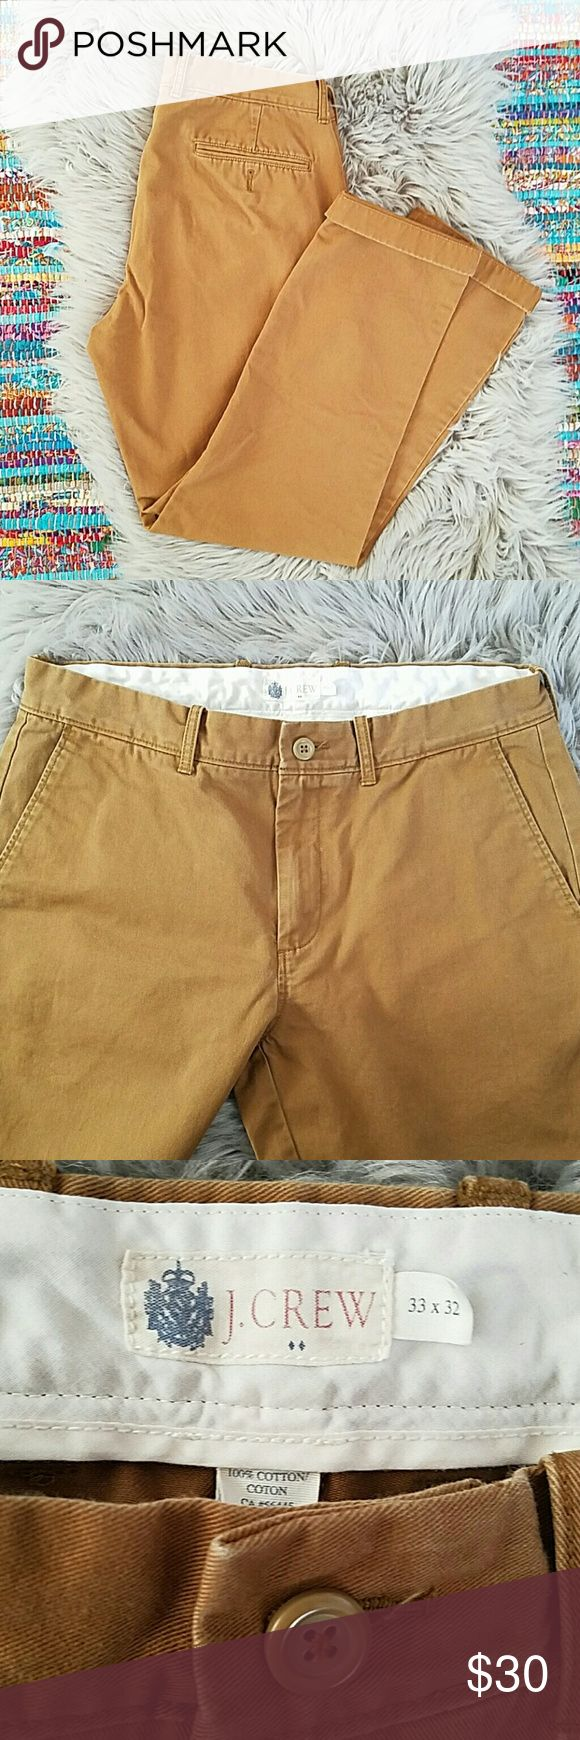 J.Crew Men's Chino Pants in Tan 33 x 32 These are men's chino pants in good used condition  J.Crew. Good used condition. Dark tan color. J. Crew Pants